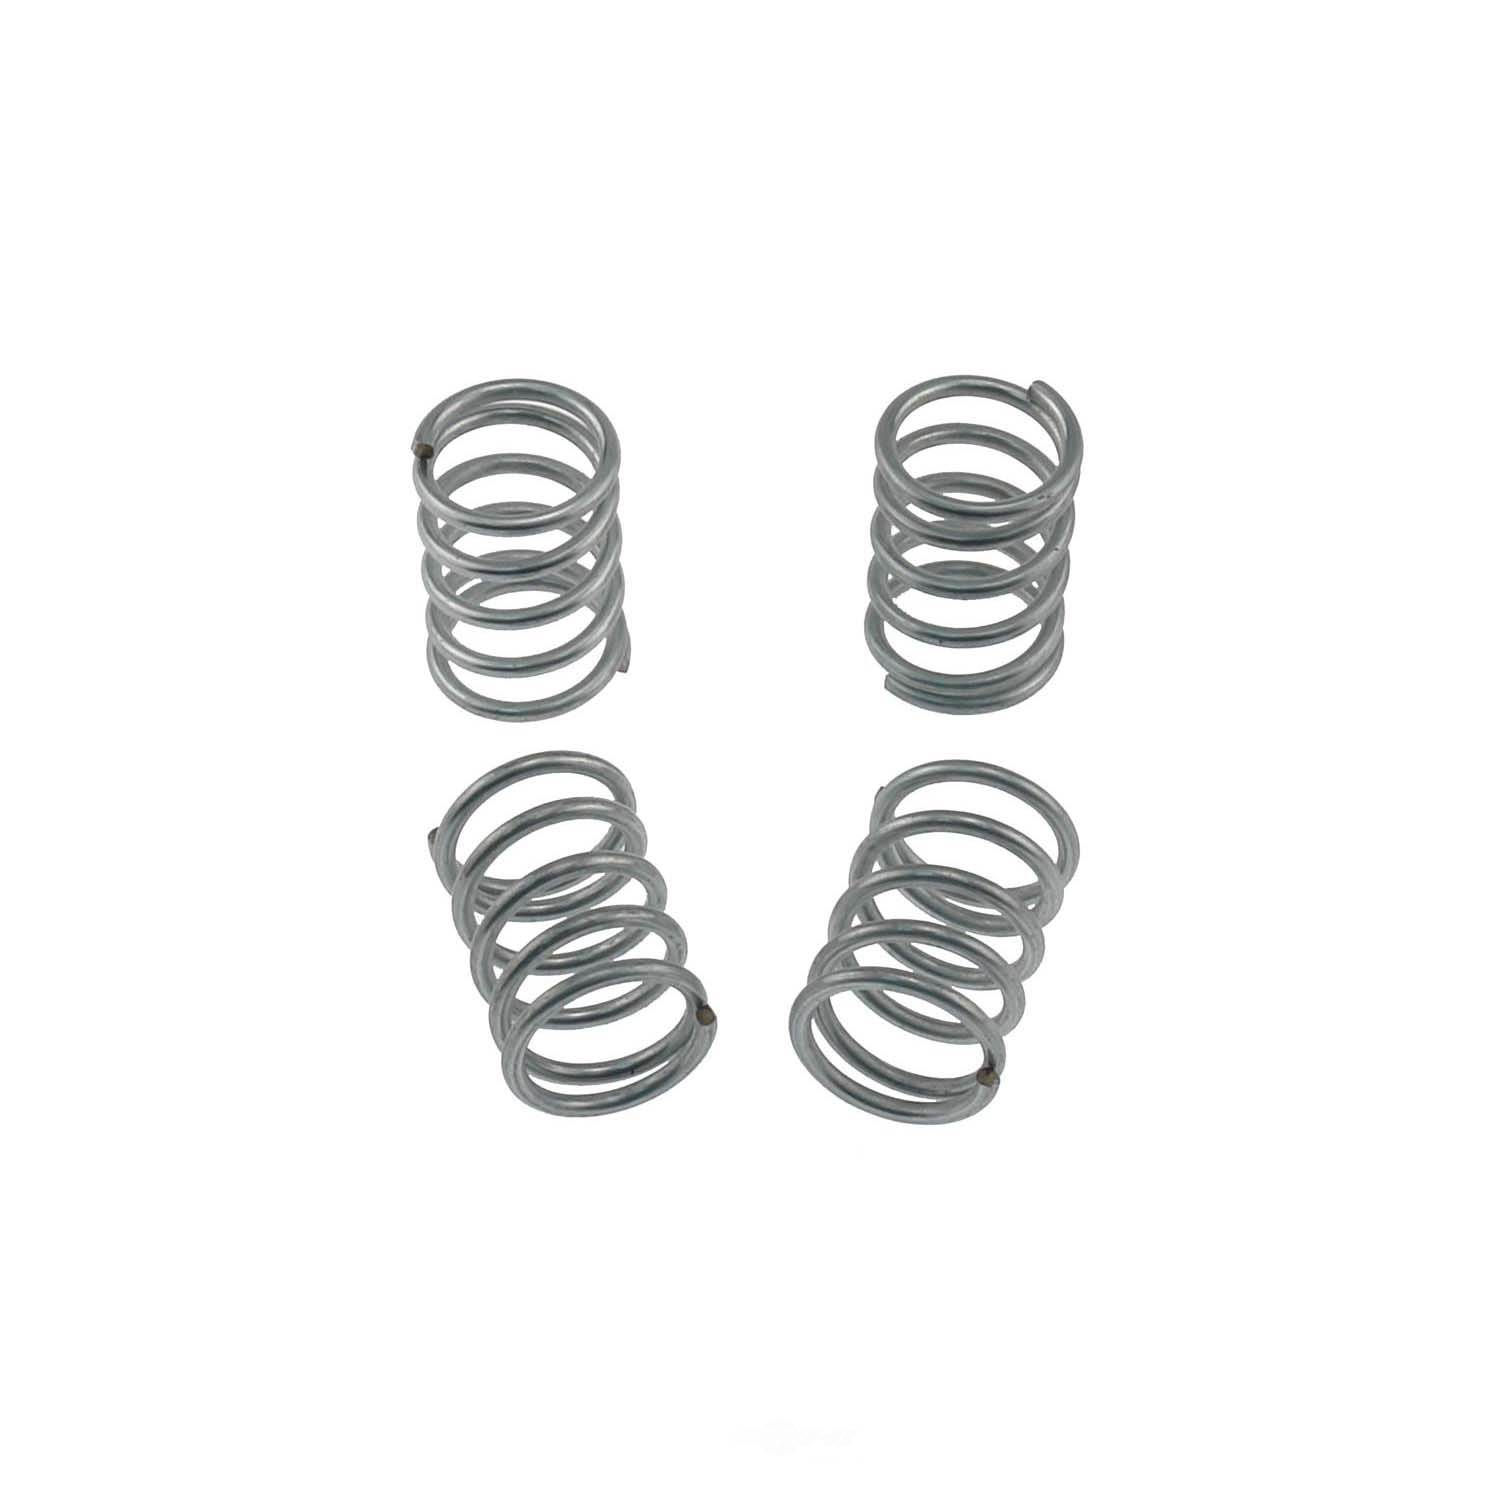 CARLSON QUALITY BRAKE PARTS - Brake Hold Down Spring - CRL H1190-2